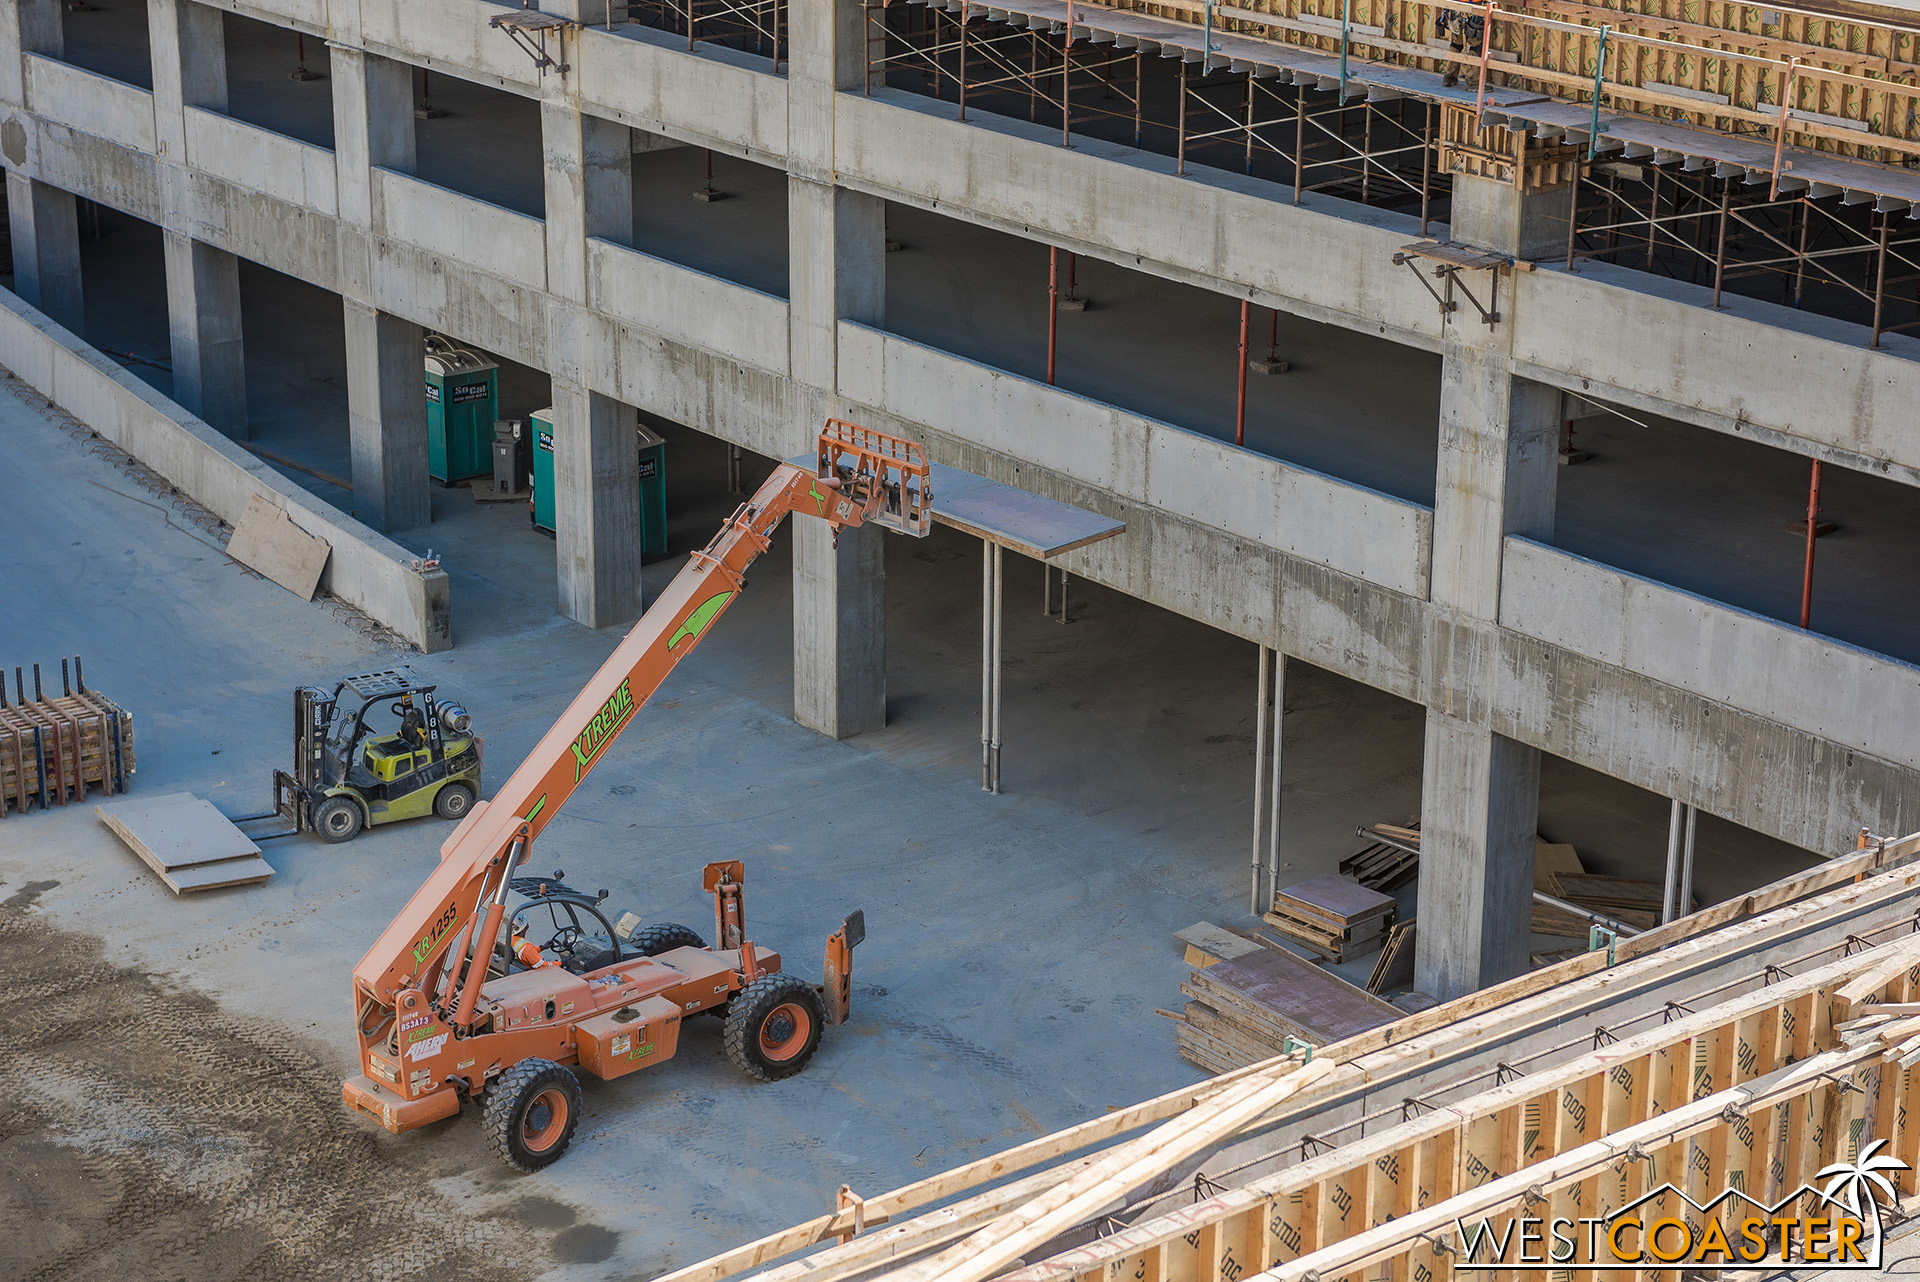 A extending fork lift raises a concrete formwork panel to the top.